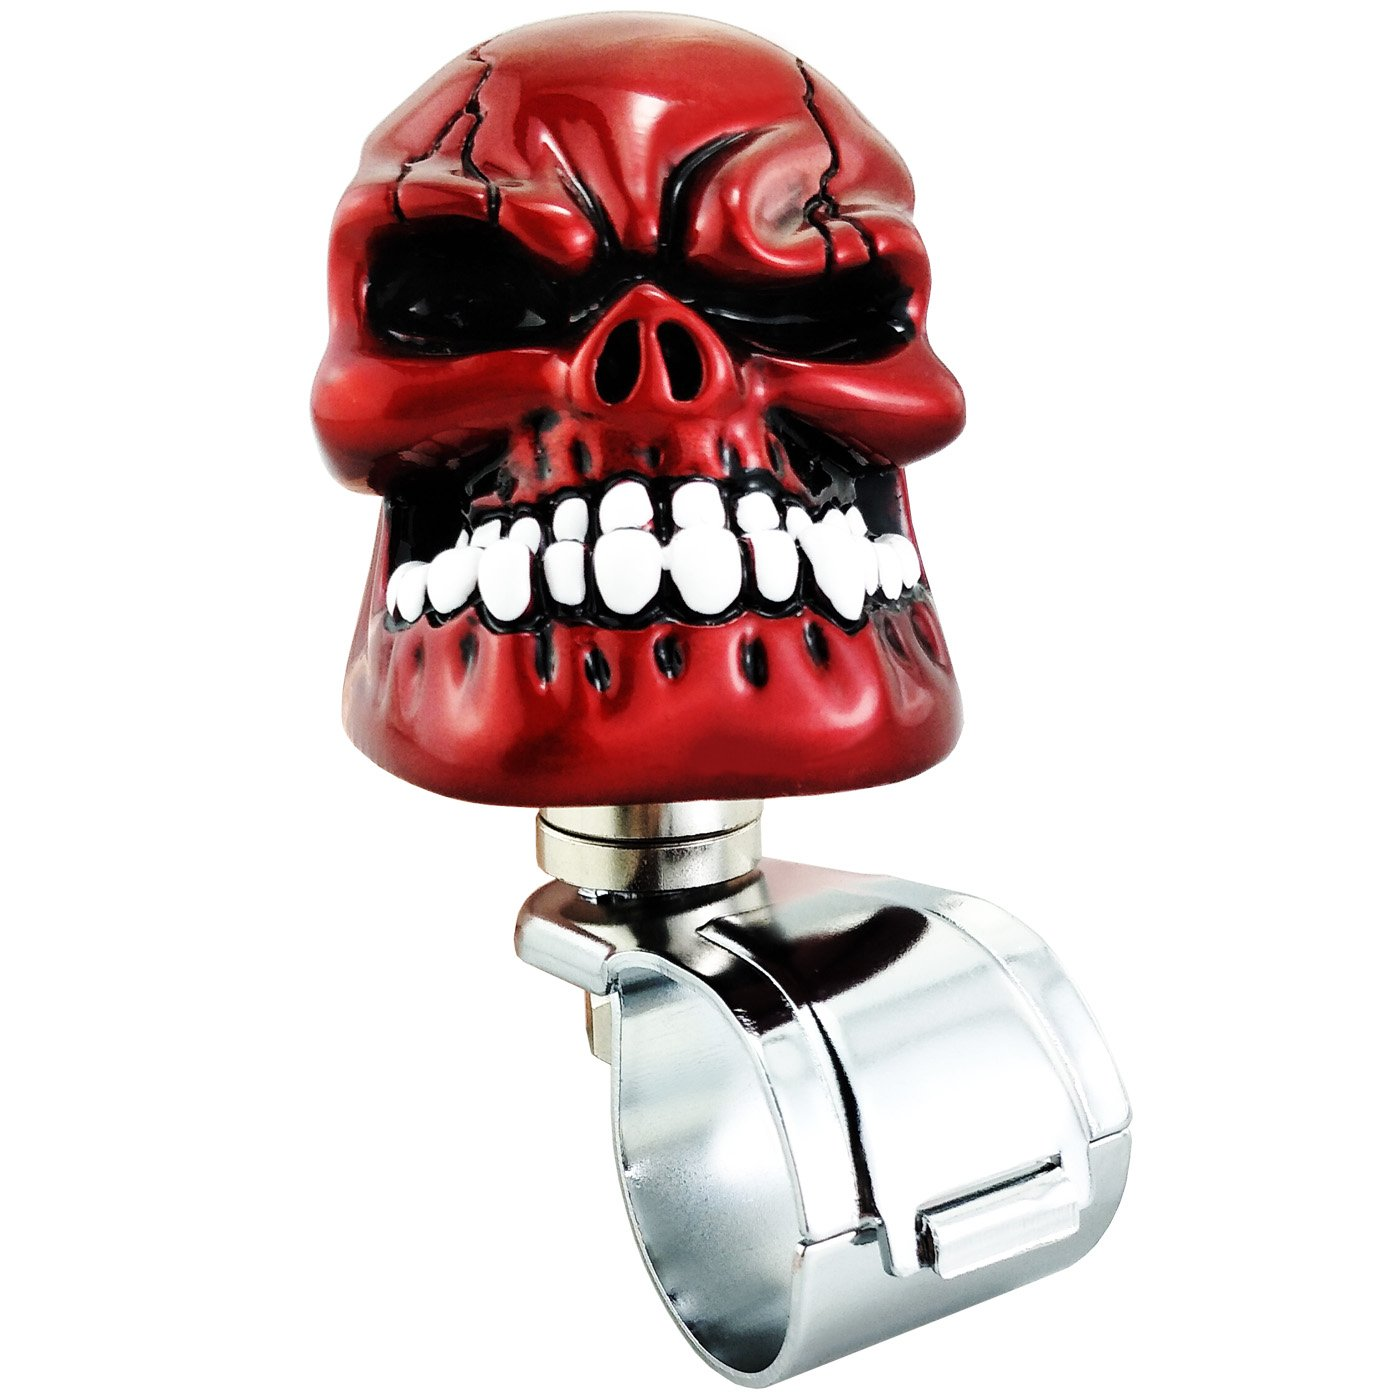 LUNSOM Cool Power Handle Spinner Skull Steering Wheel Knob for Car Accessory Universal Red Spinner Wheel (Red Hat)